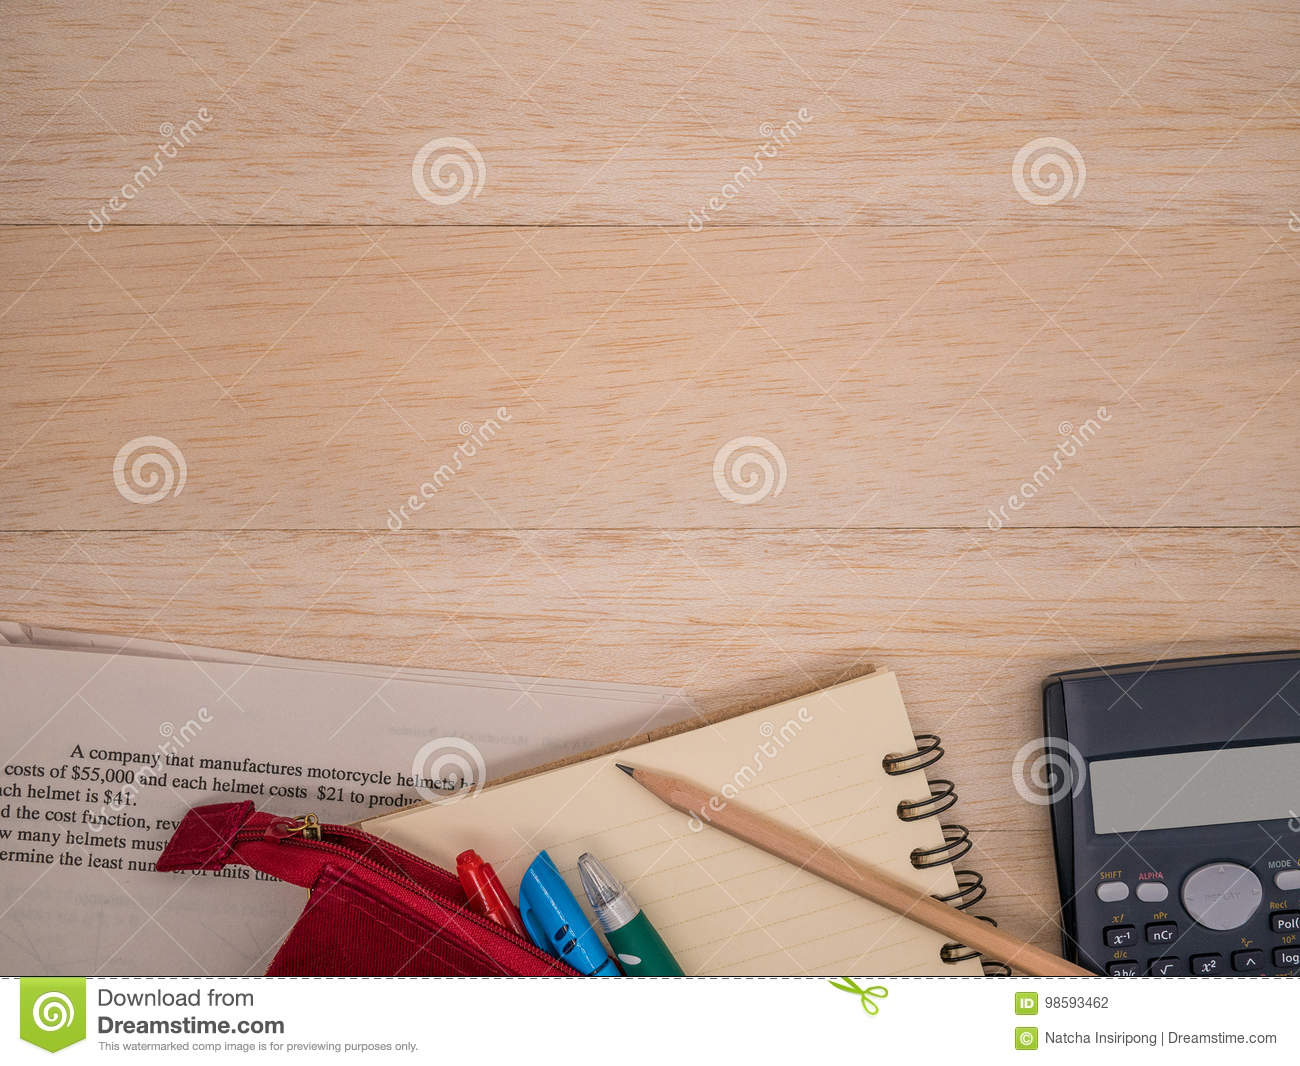 Notebook Wooden Pencil Stationary Calculator And